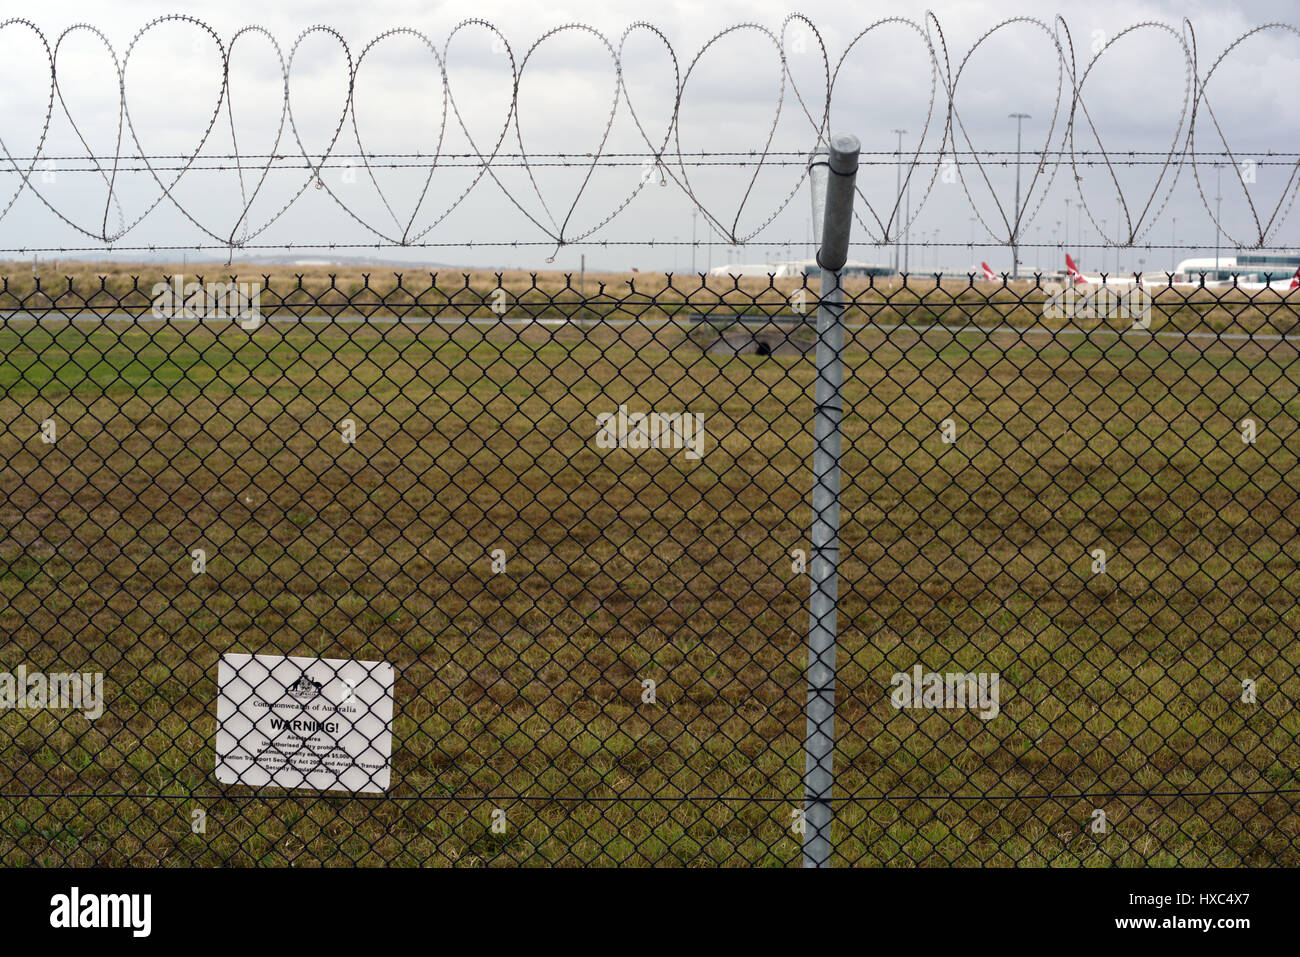 Brisbane, Australia: Barrier security fencing with razor wire at ...